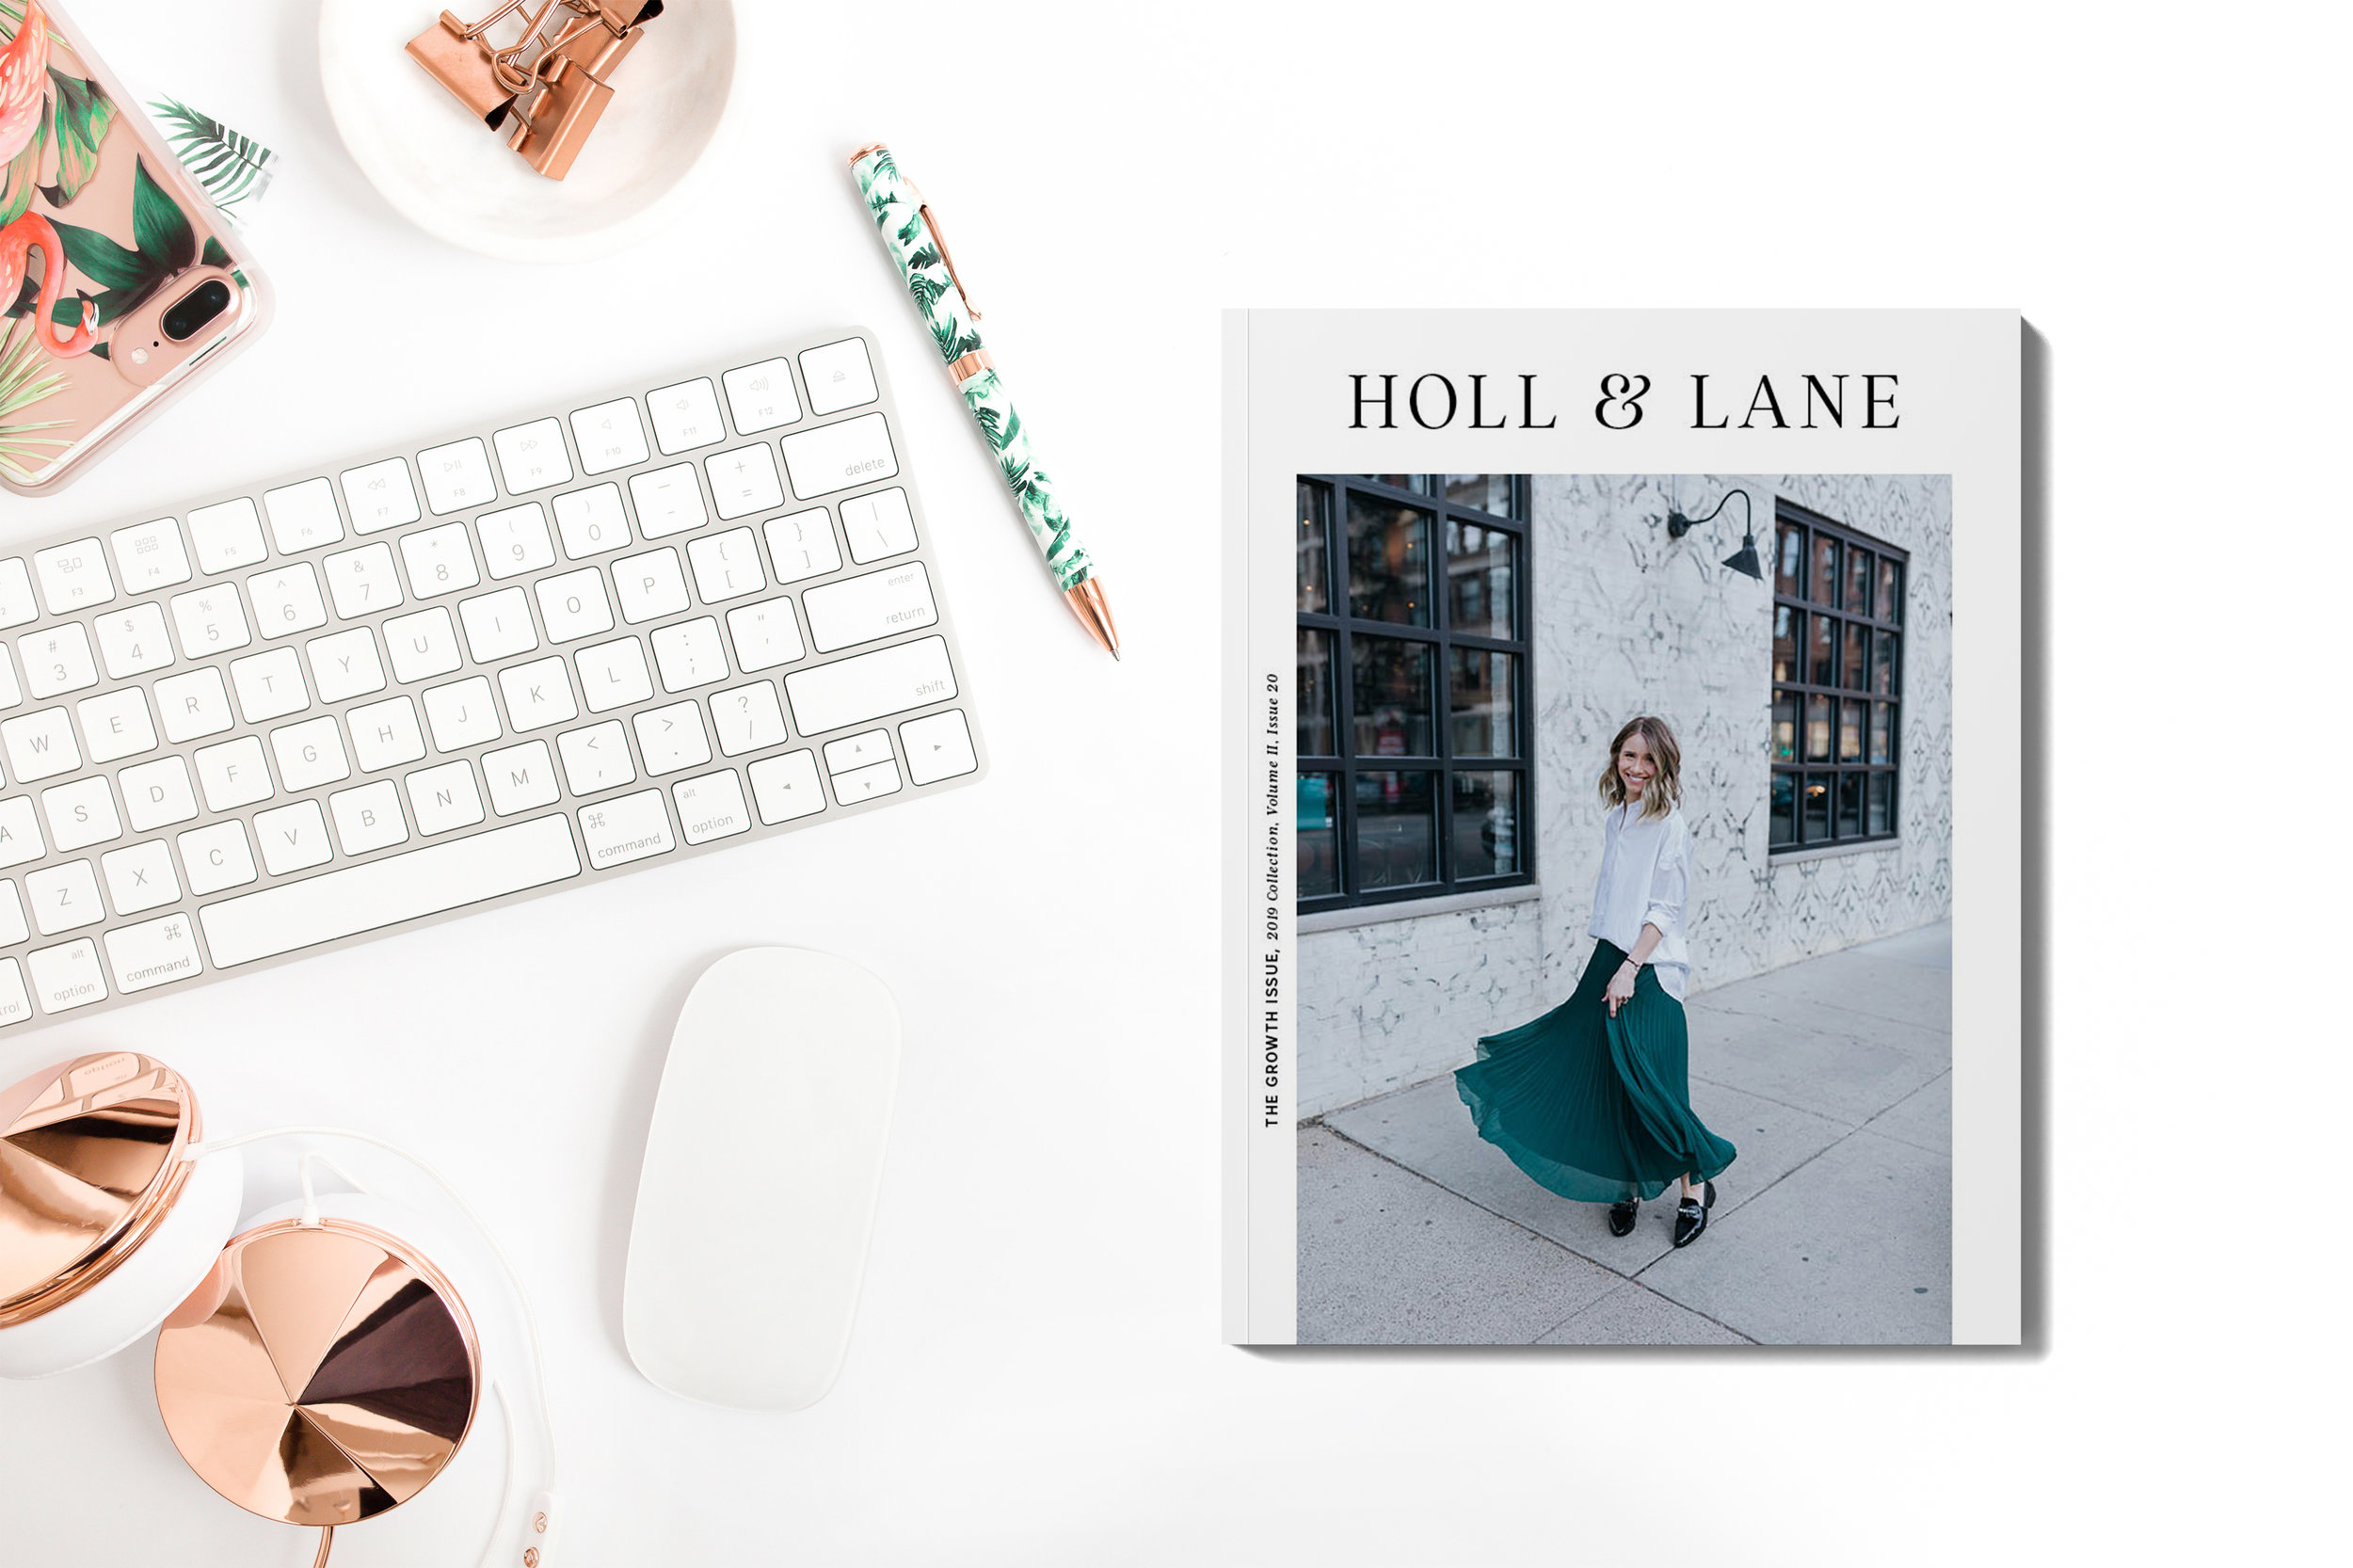 Read our GROWTH issue of Holl & Lane Magazine here: hollandlanemag.com/shop